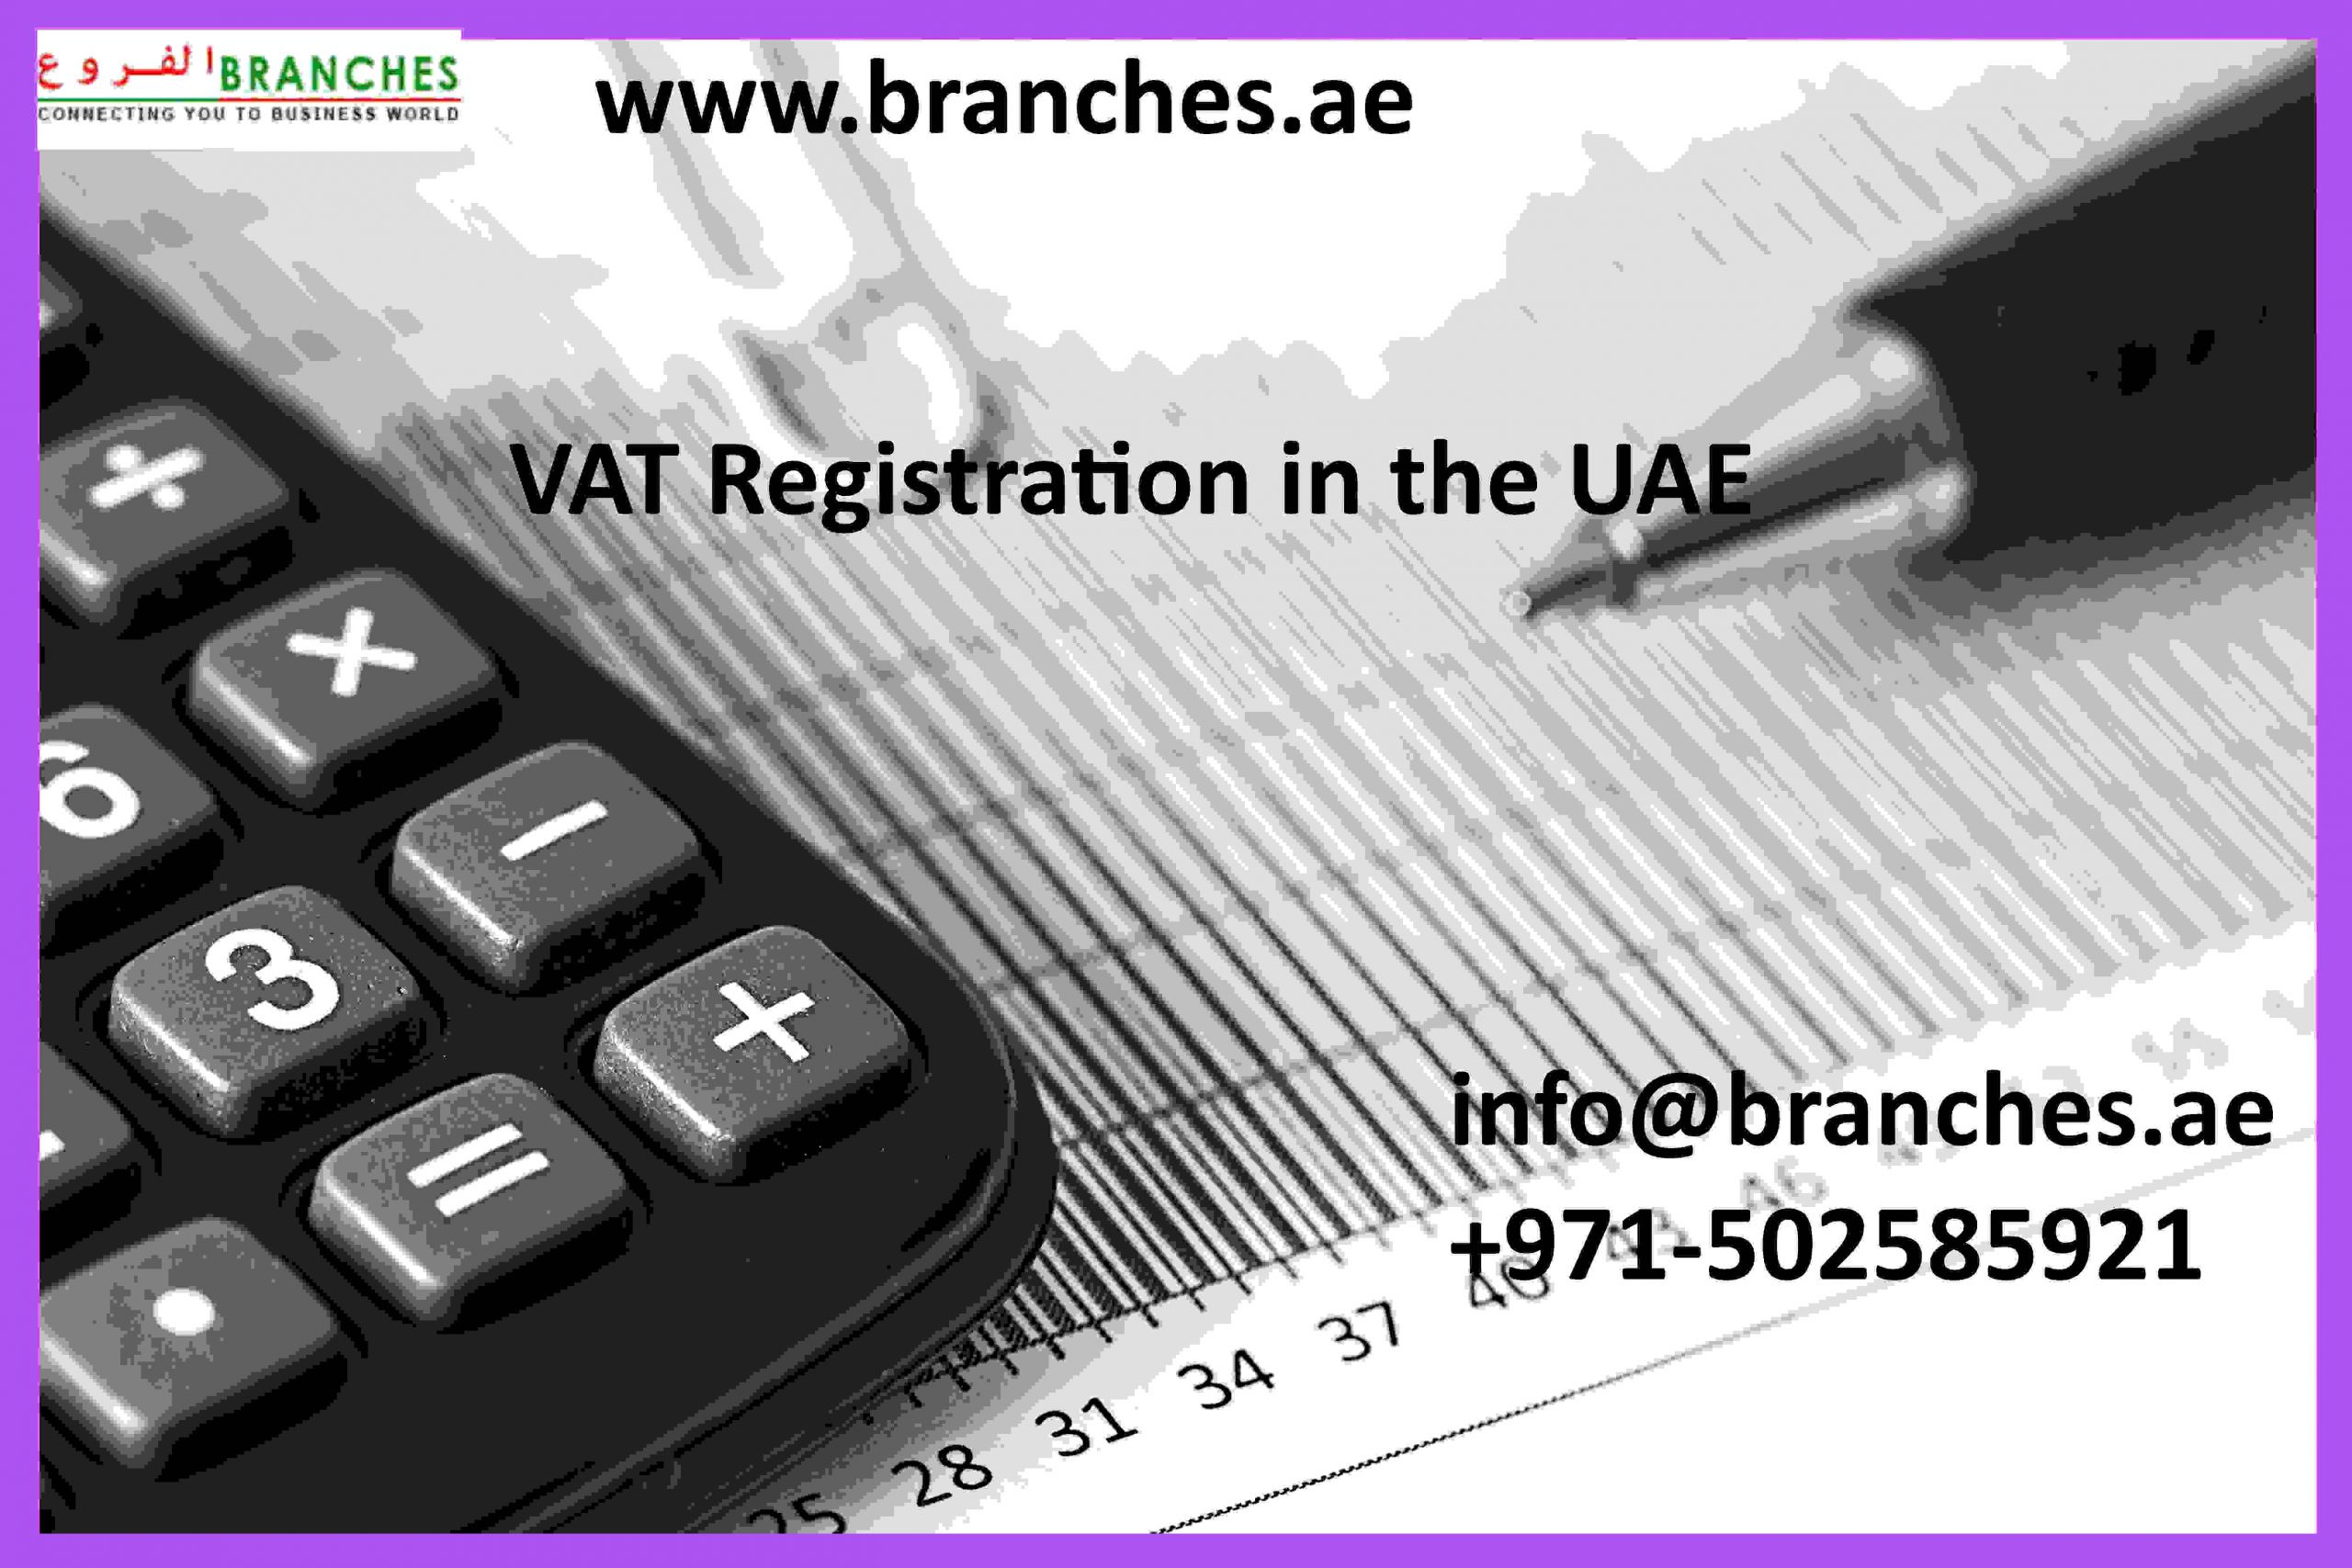 VAT Registration in the UAE